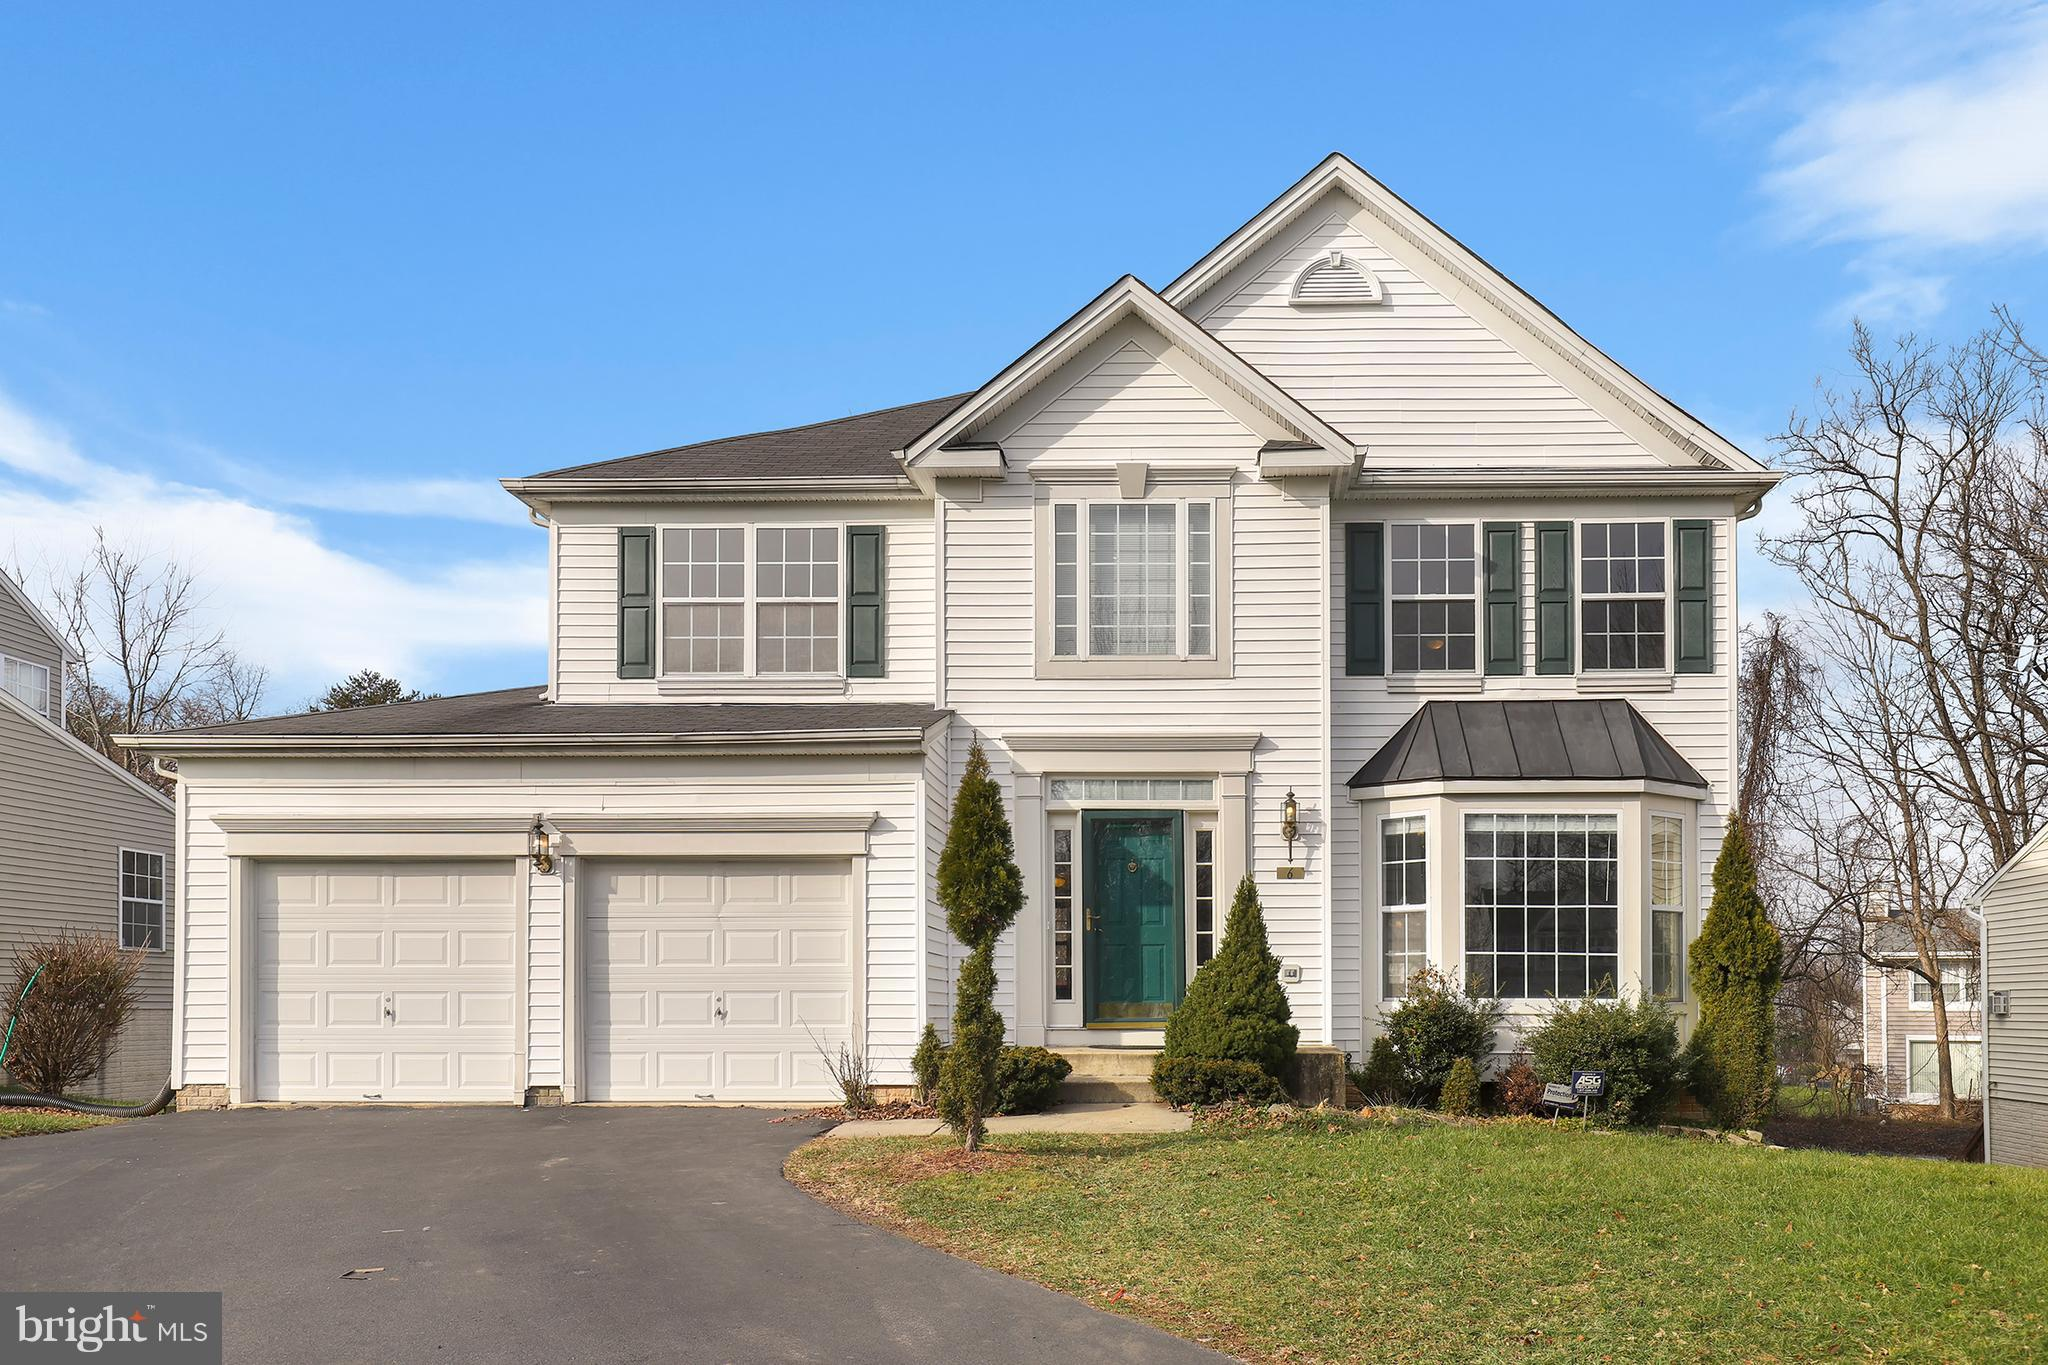 6 PAIGE VIEW COURT, RANDALLSTOWN, MD 21133